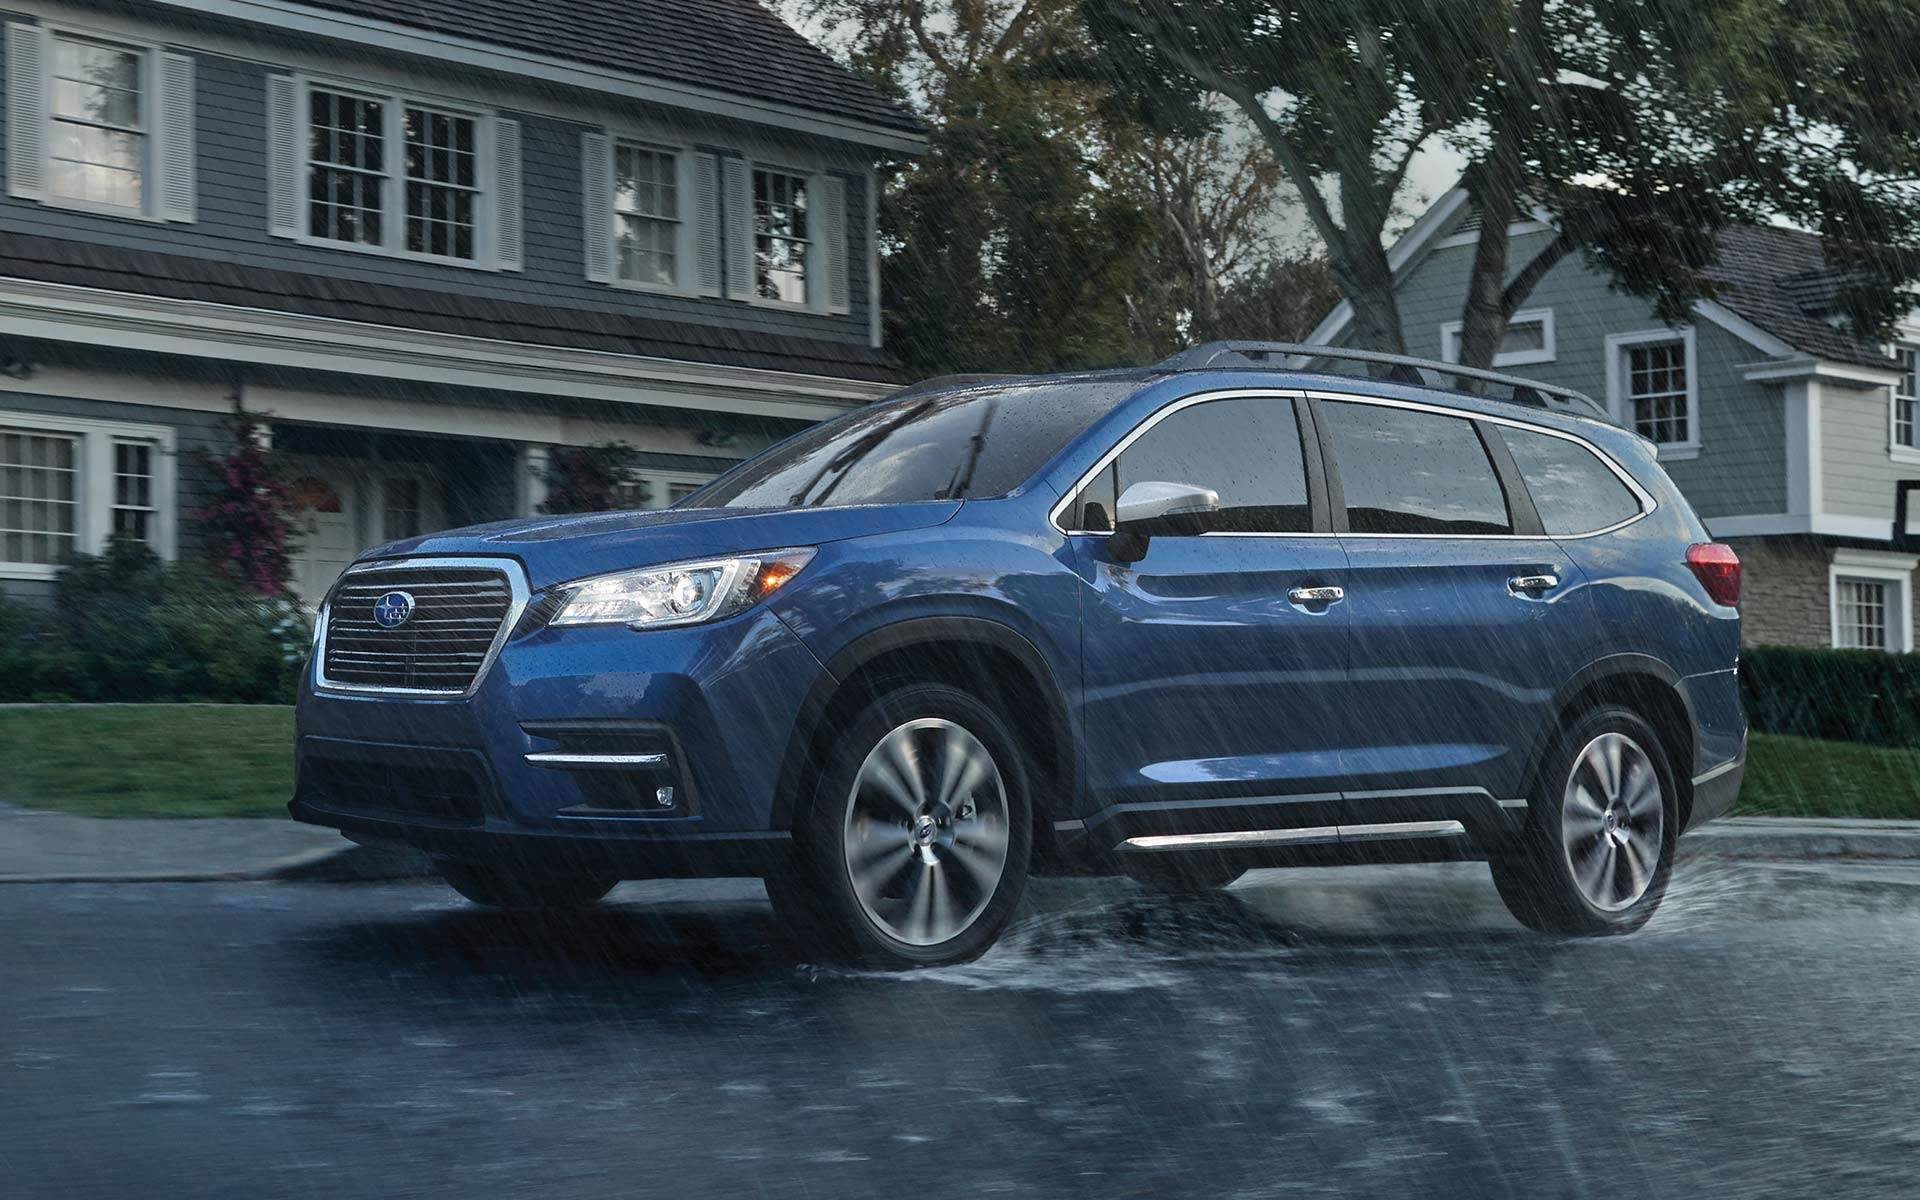 New Subaru Ascent | Lawrence Subaru